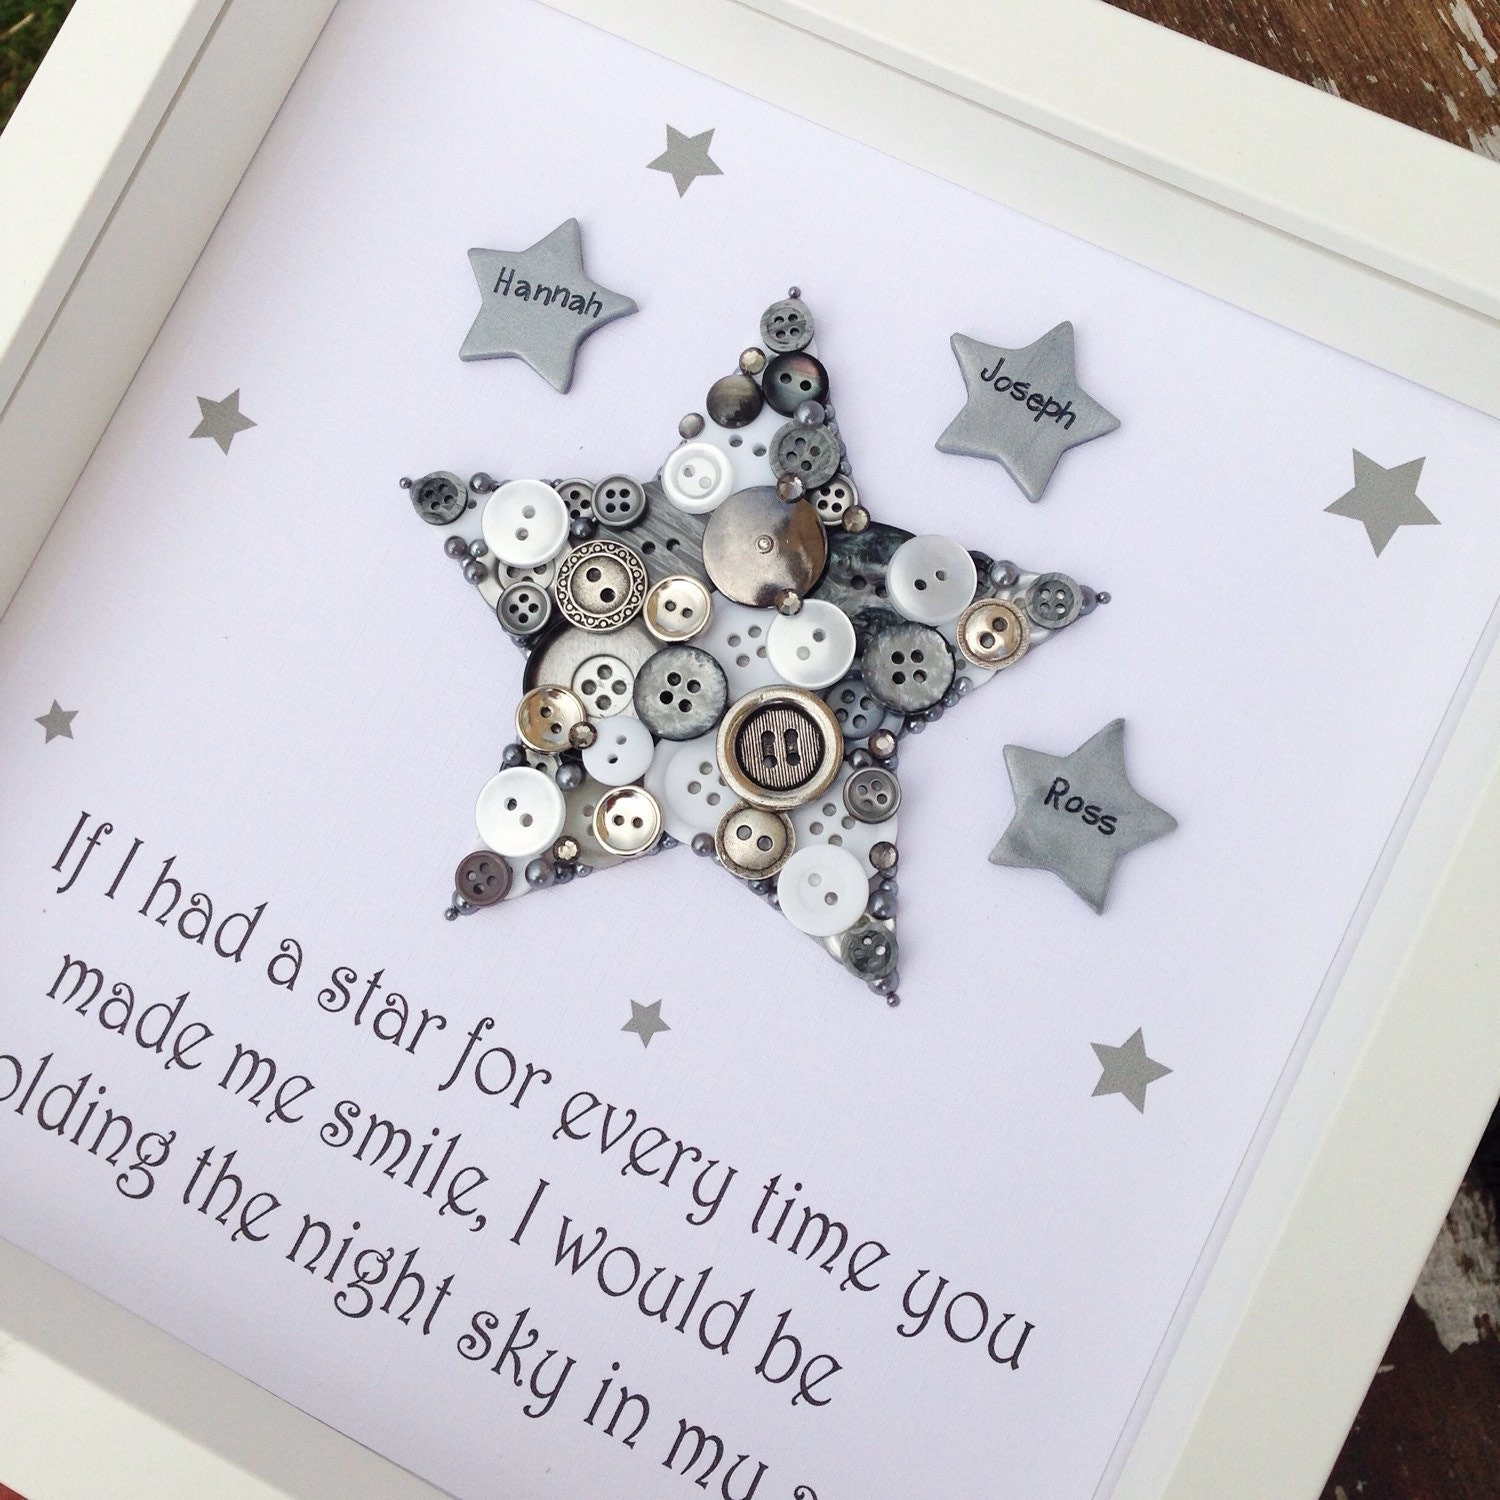 Baby Bedroom In A Box Special: Star Button Art Personalised Framed Star Gifts For Boys